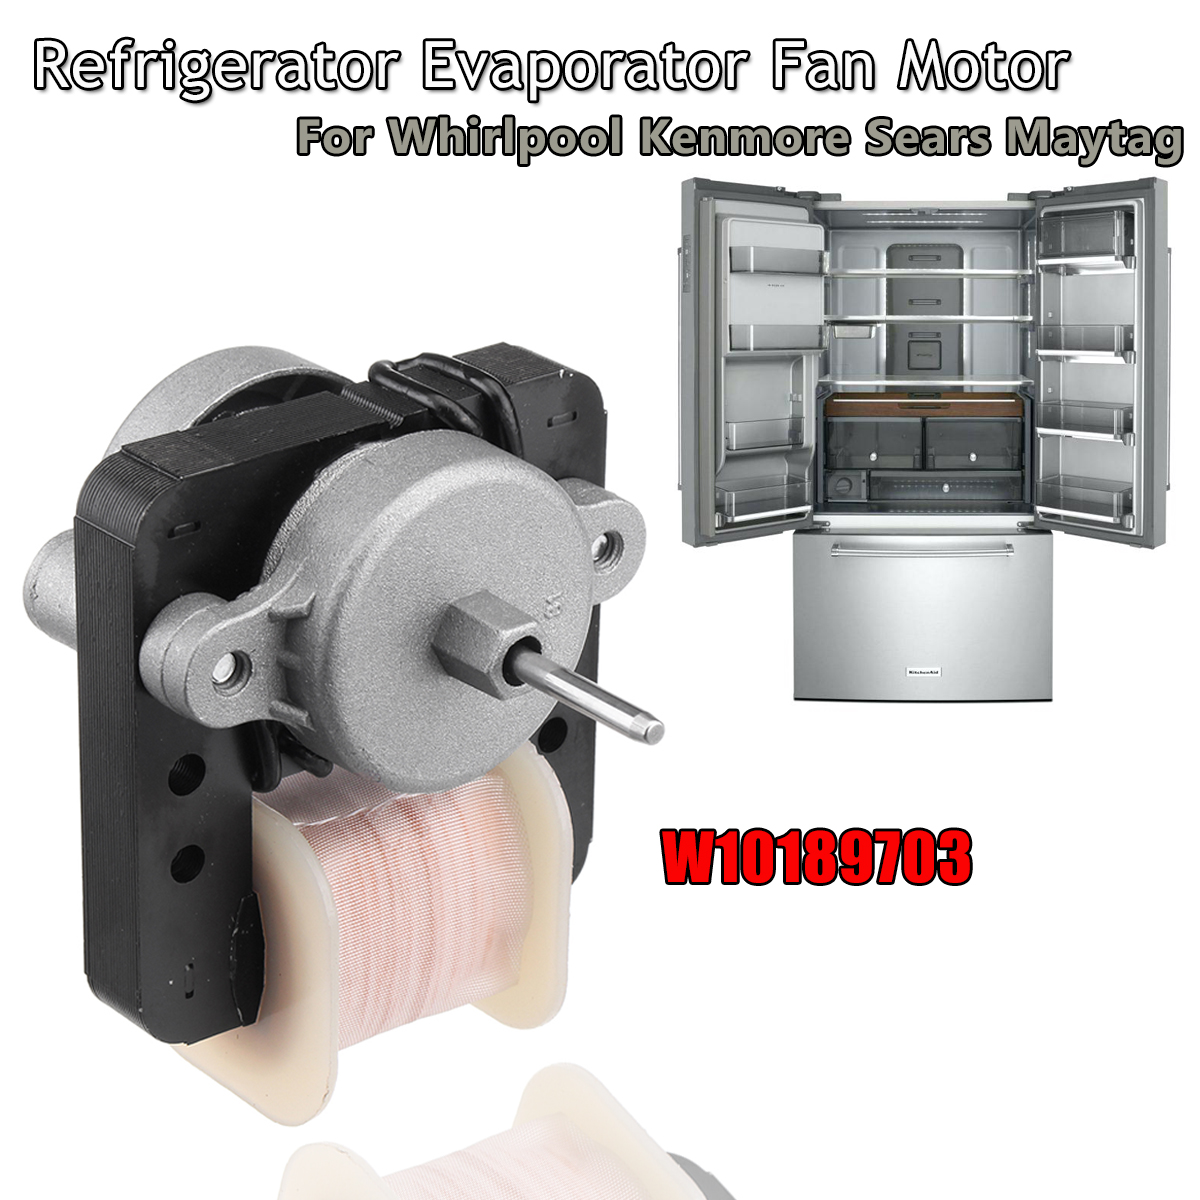 Refrigerator Evaporator Fan Motor For Whirlpool Kenmore Sears Maytag W10189703 abierto mexicano los cabos wednesday page 6